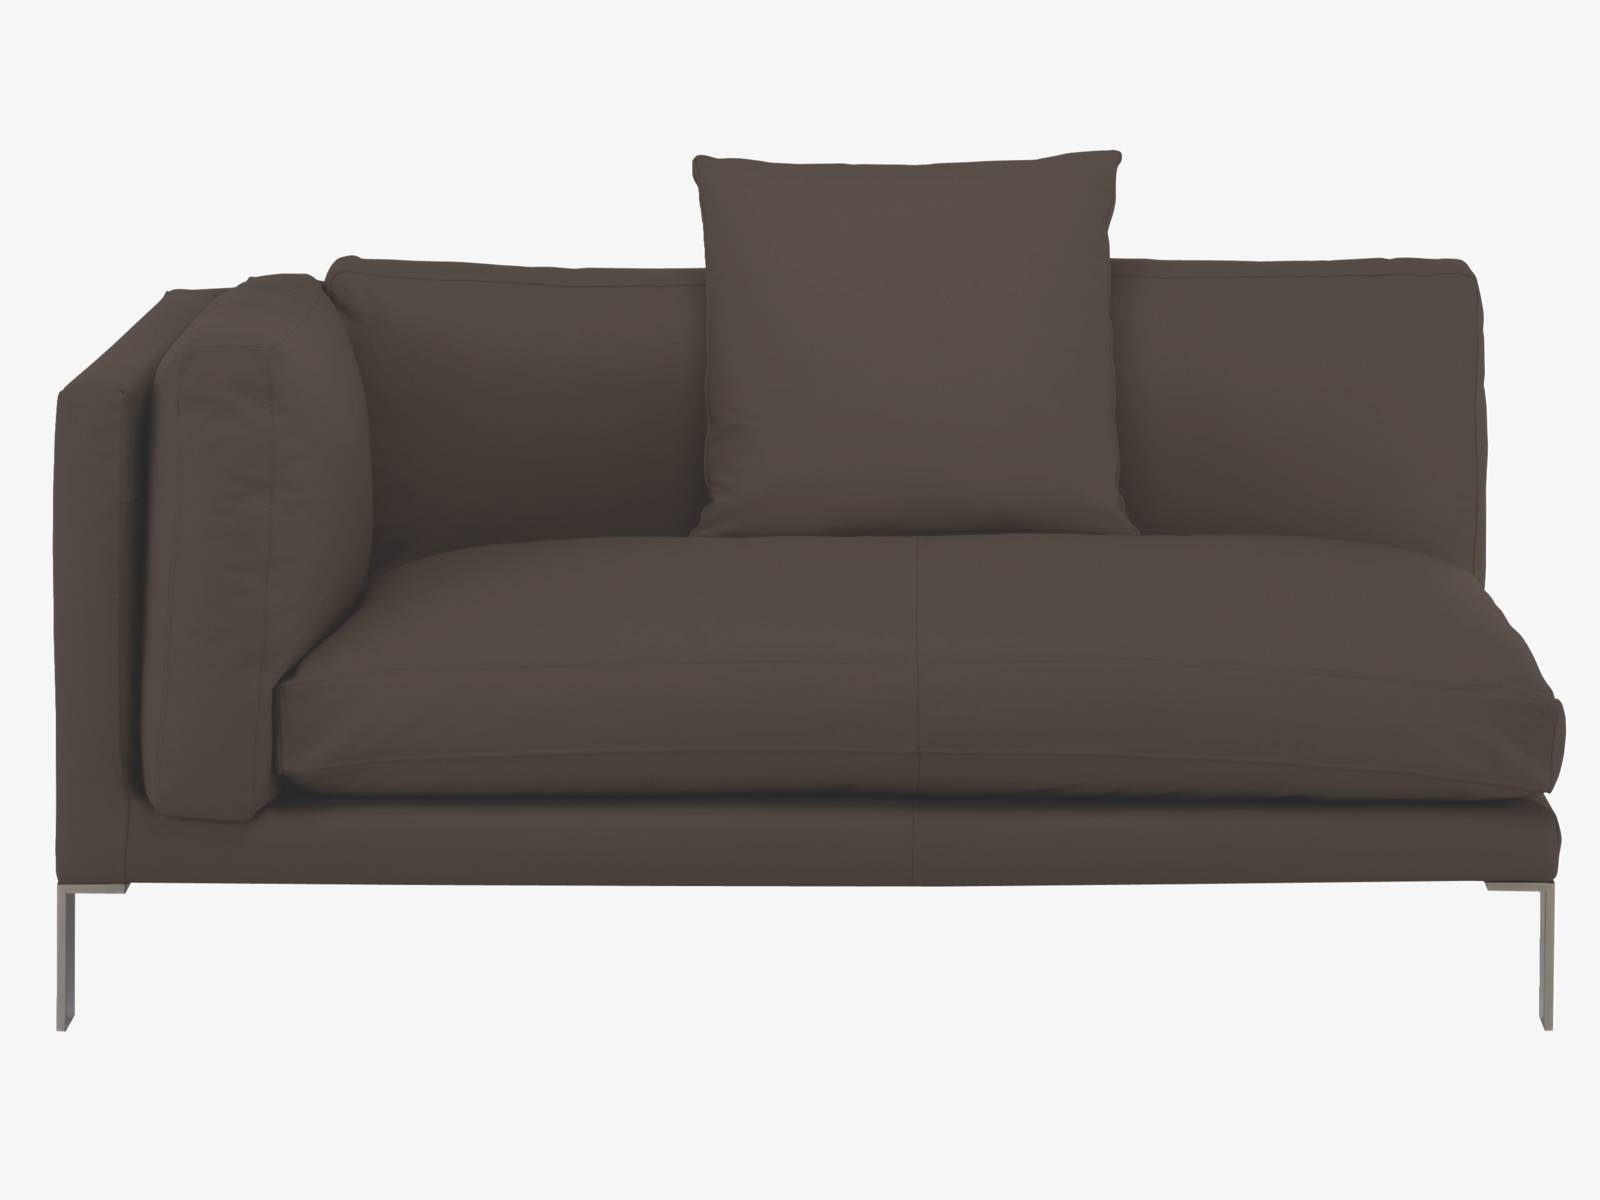 Small Modular Sofa With Ideas Hd Images 32255 | Kengire intended for Small Modular Sofas (Image 18 of 25)